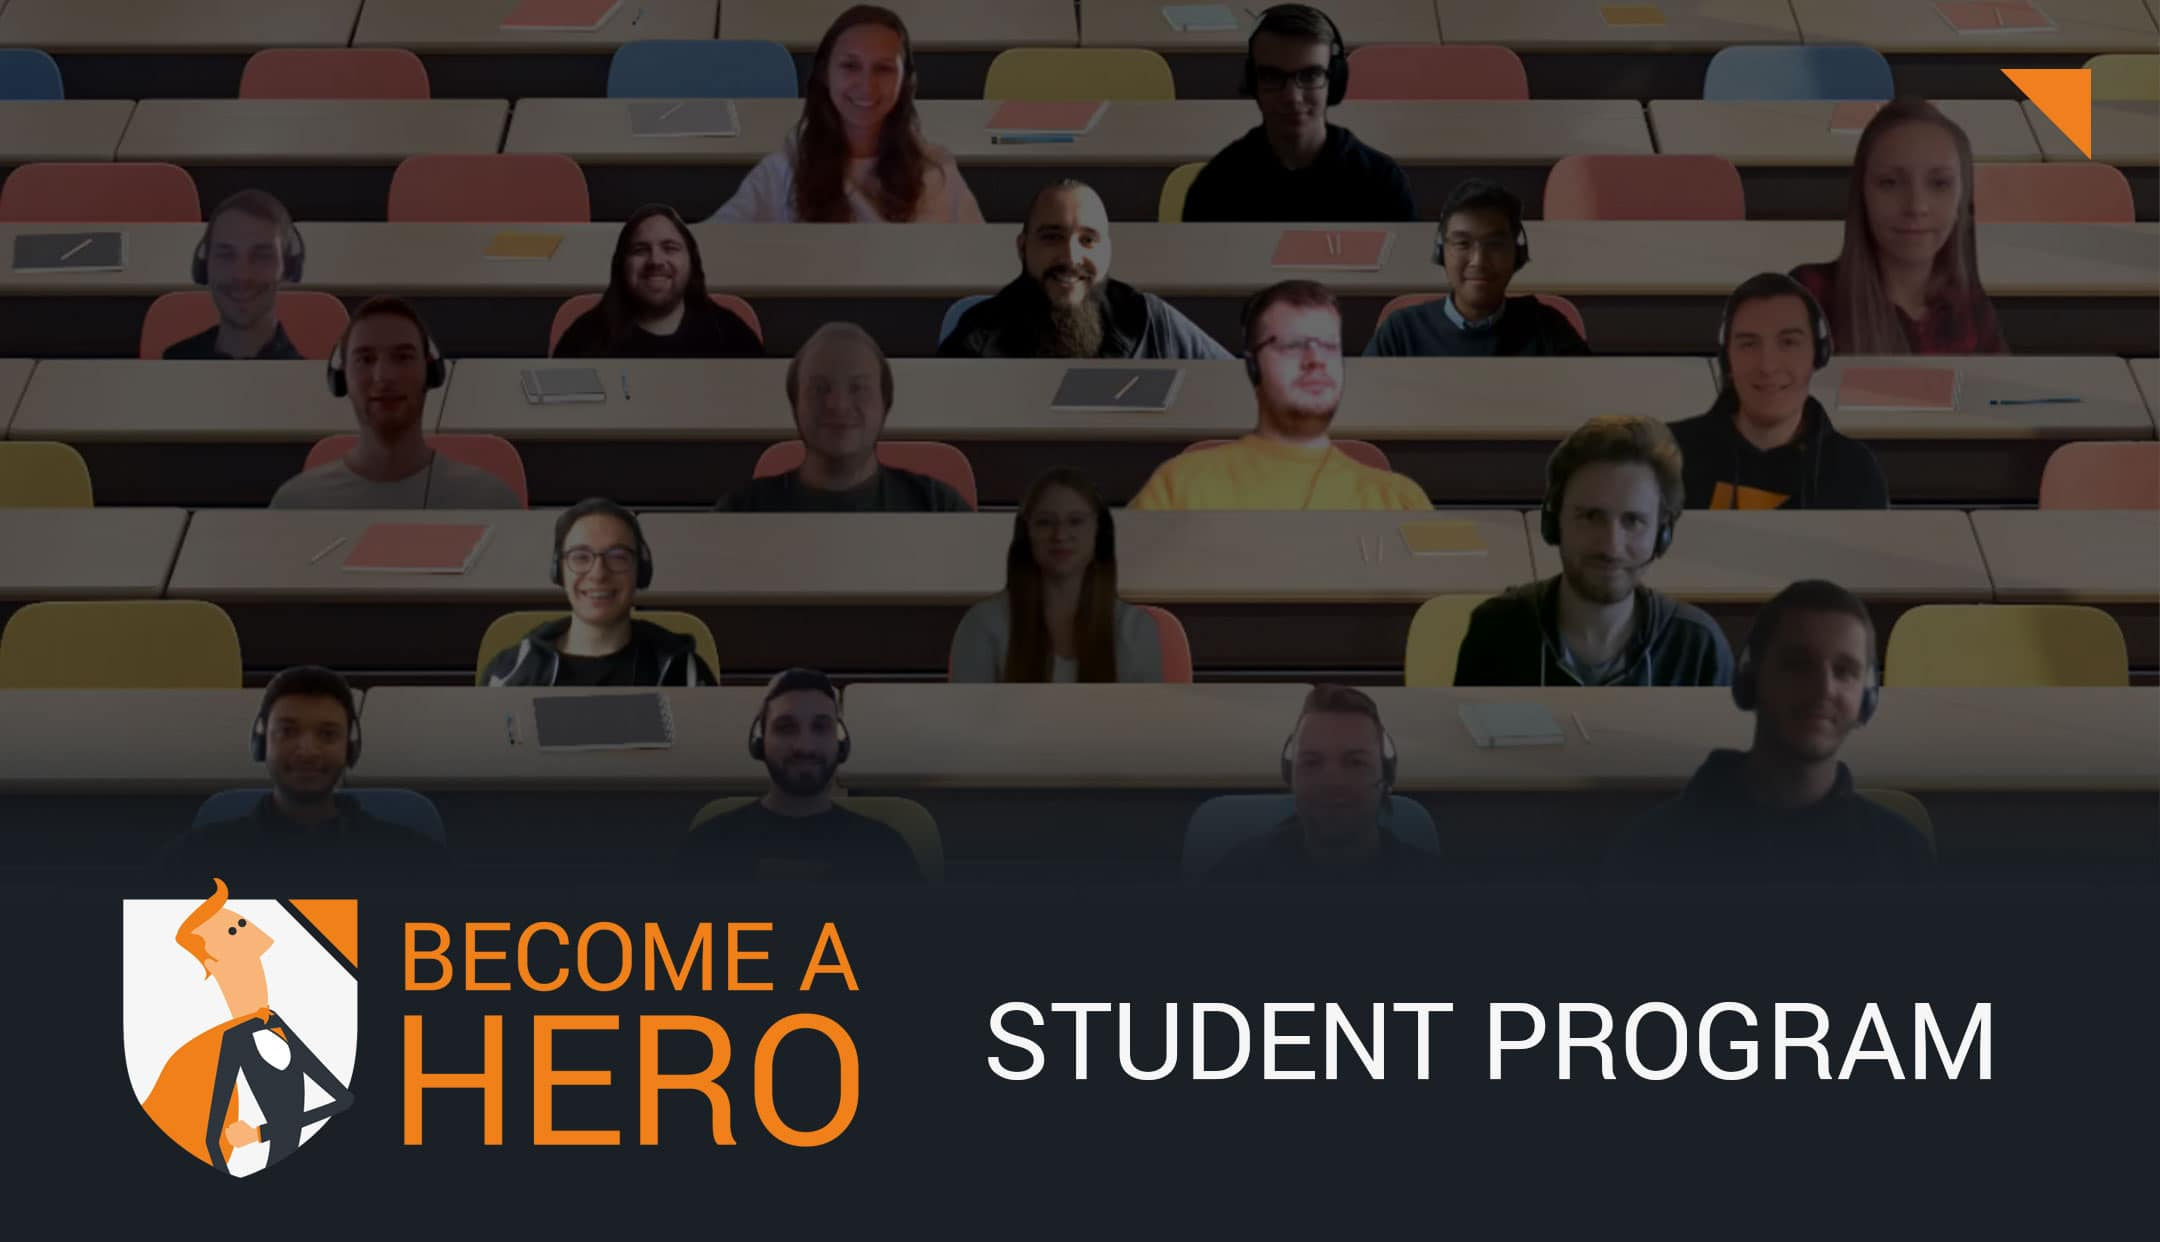 """usd Students Circle – """"Become a Hero Program"""" für Studierende"""